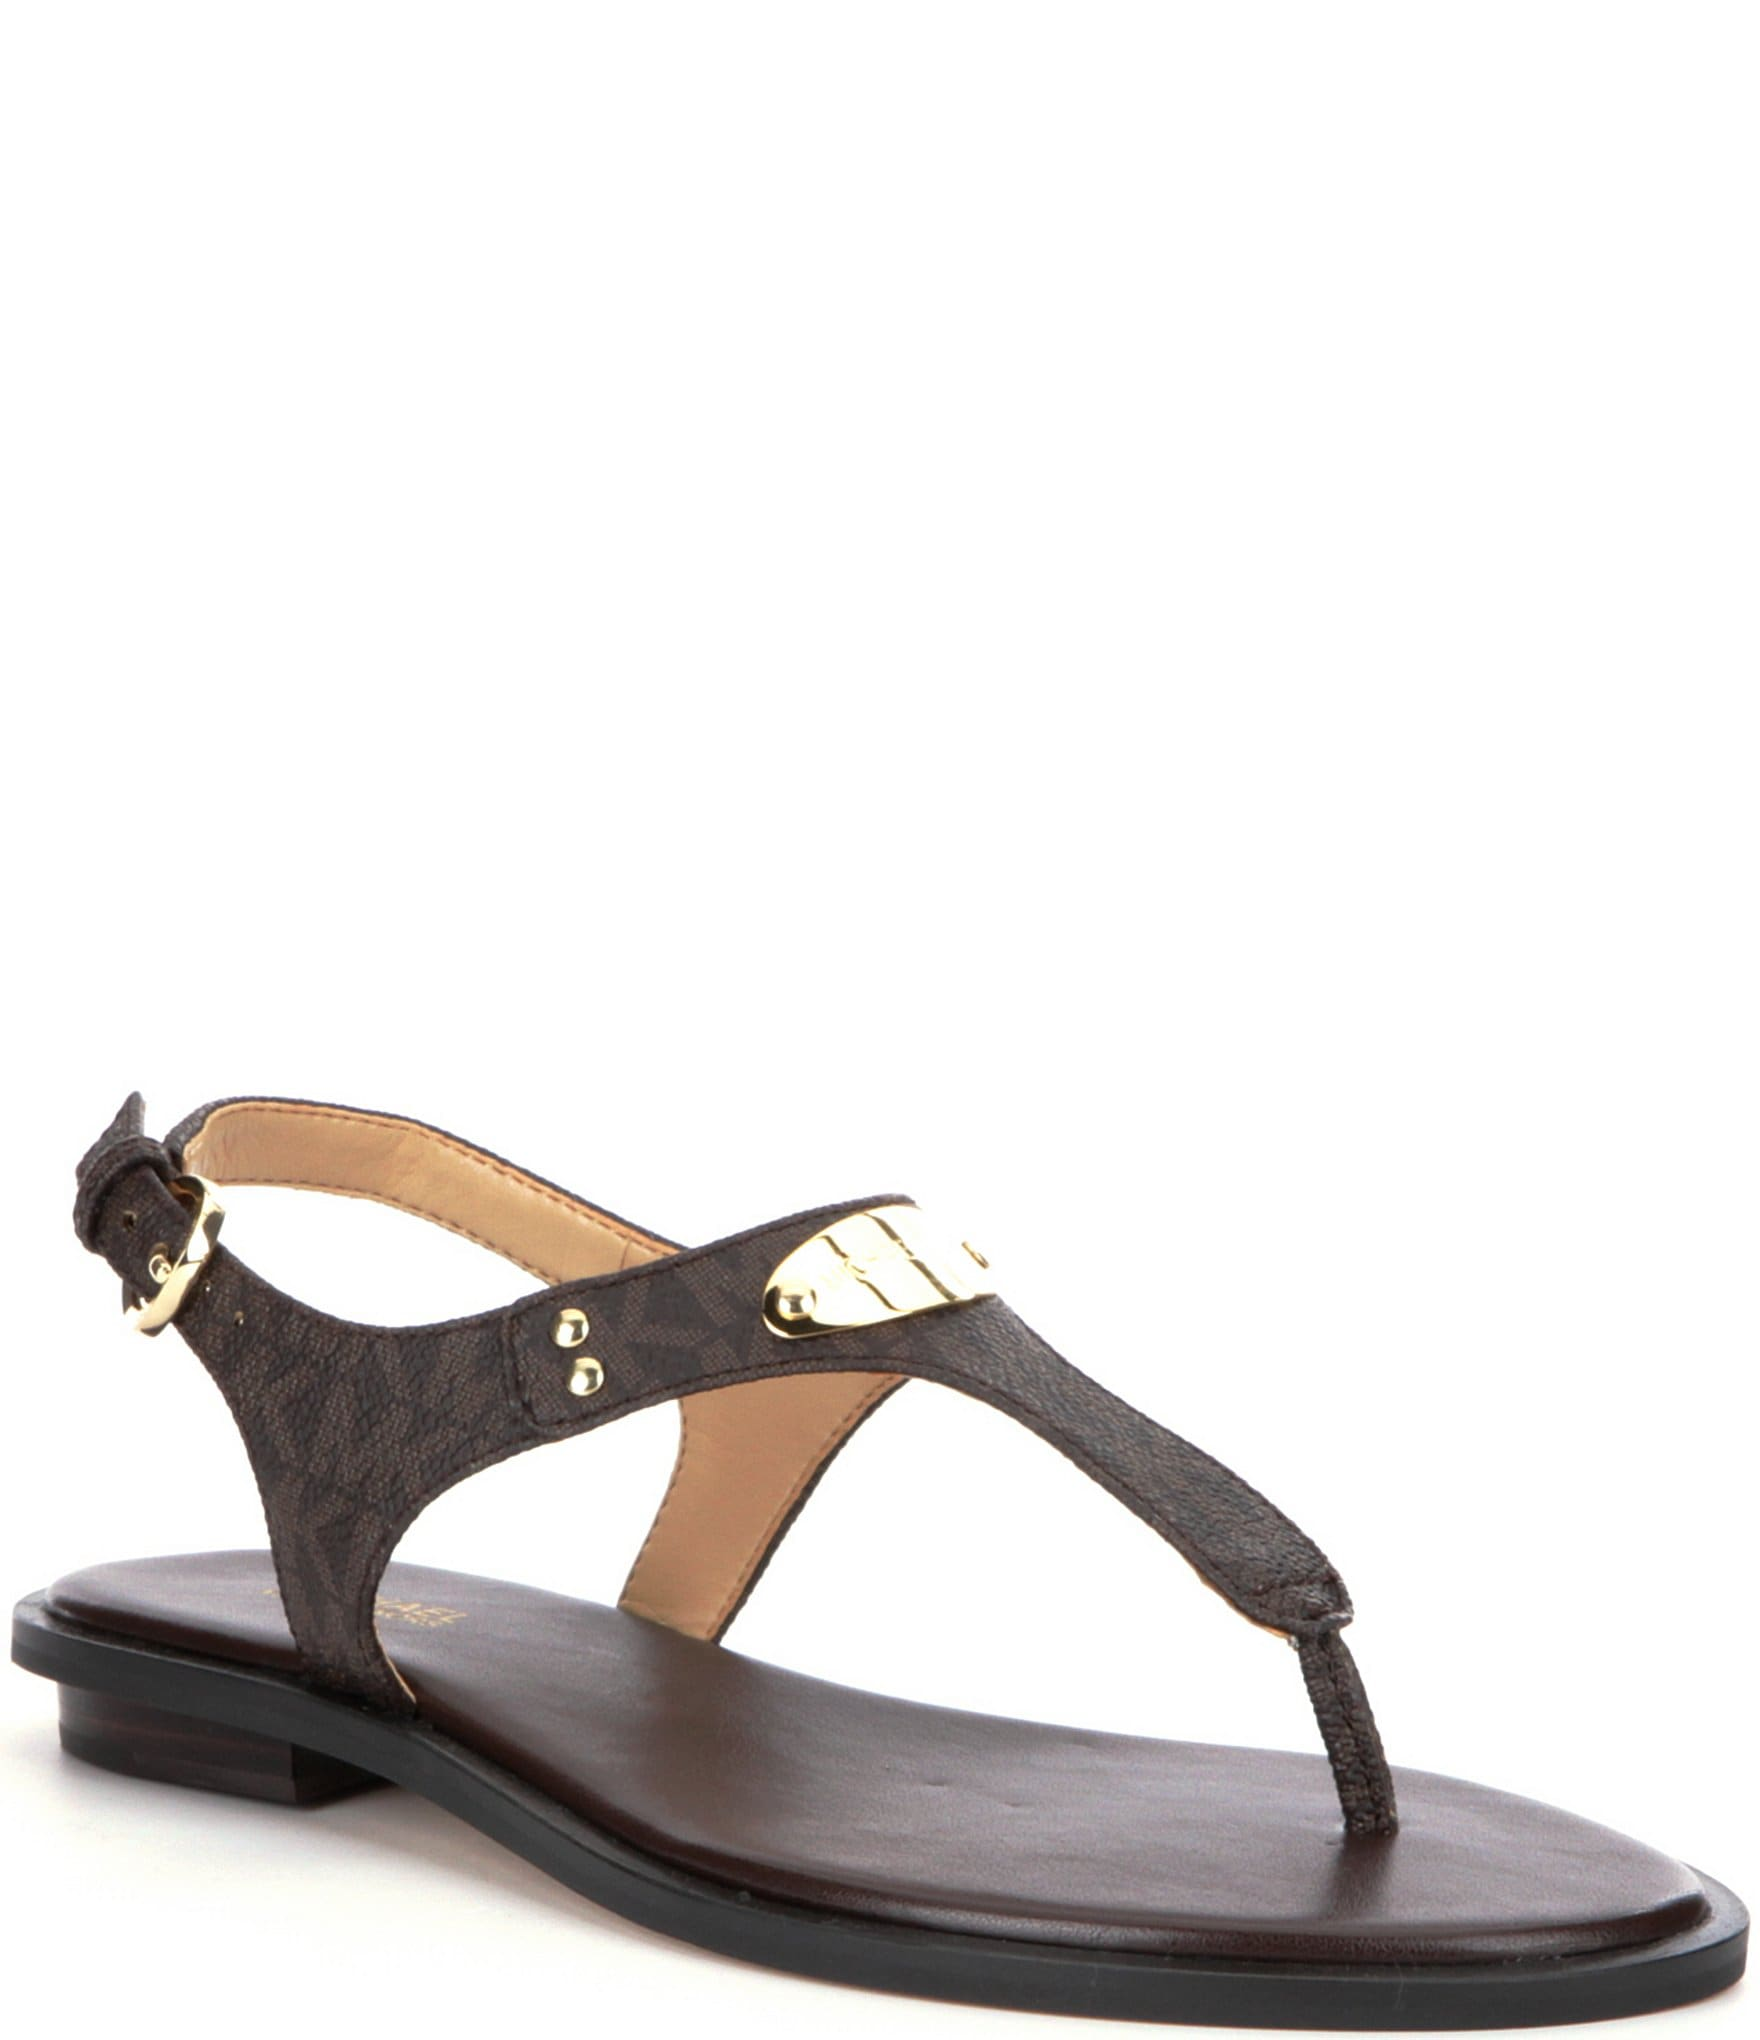 55a53989033 MICHAEL Michael Kors Women s Sandals